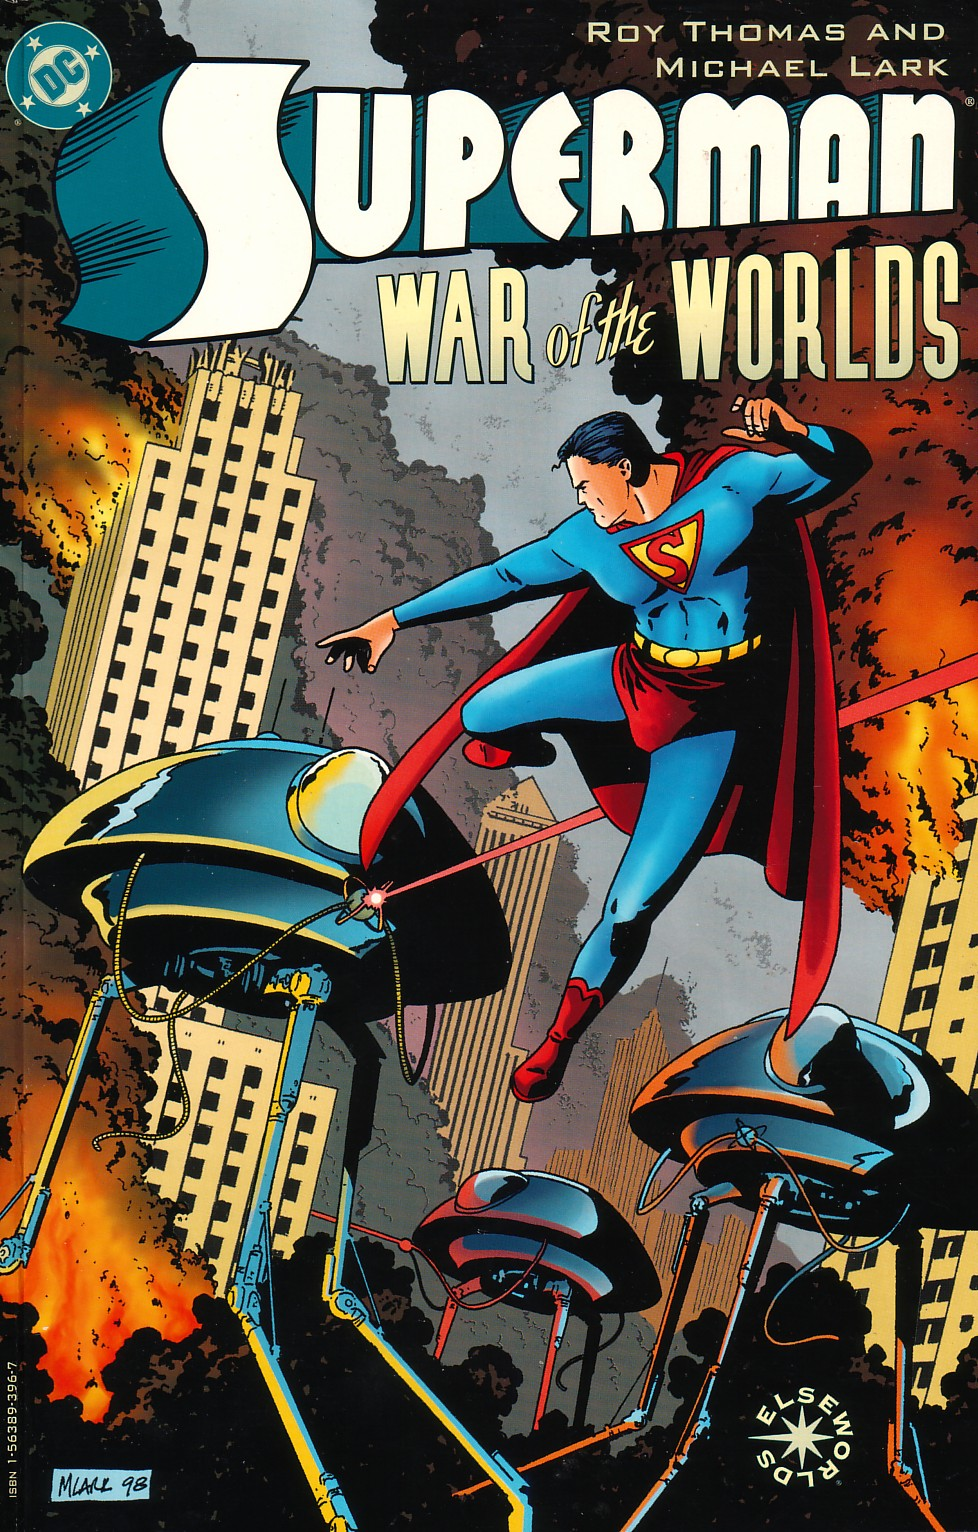 images.wikia.com/marvel_dc/images/0/05/Superman_War_of_the_Worlds.jpg